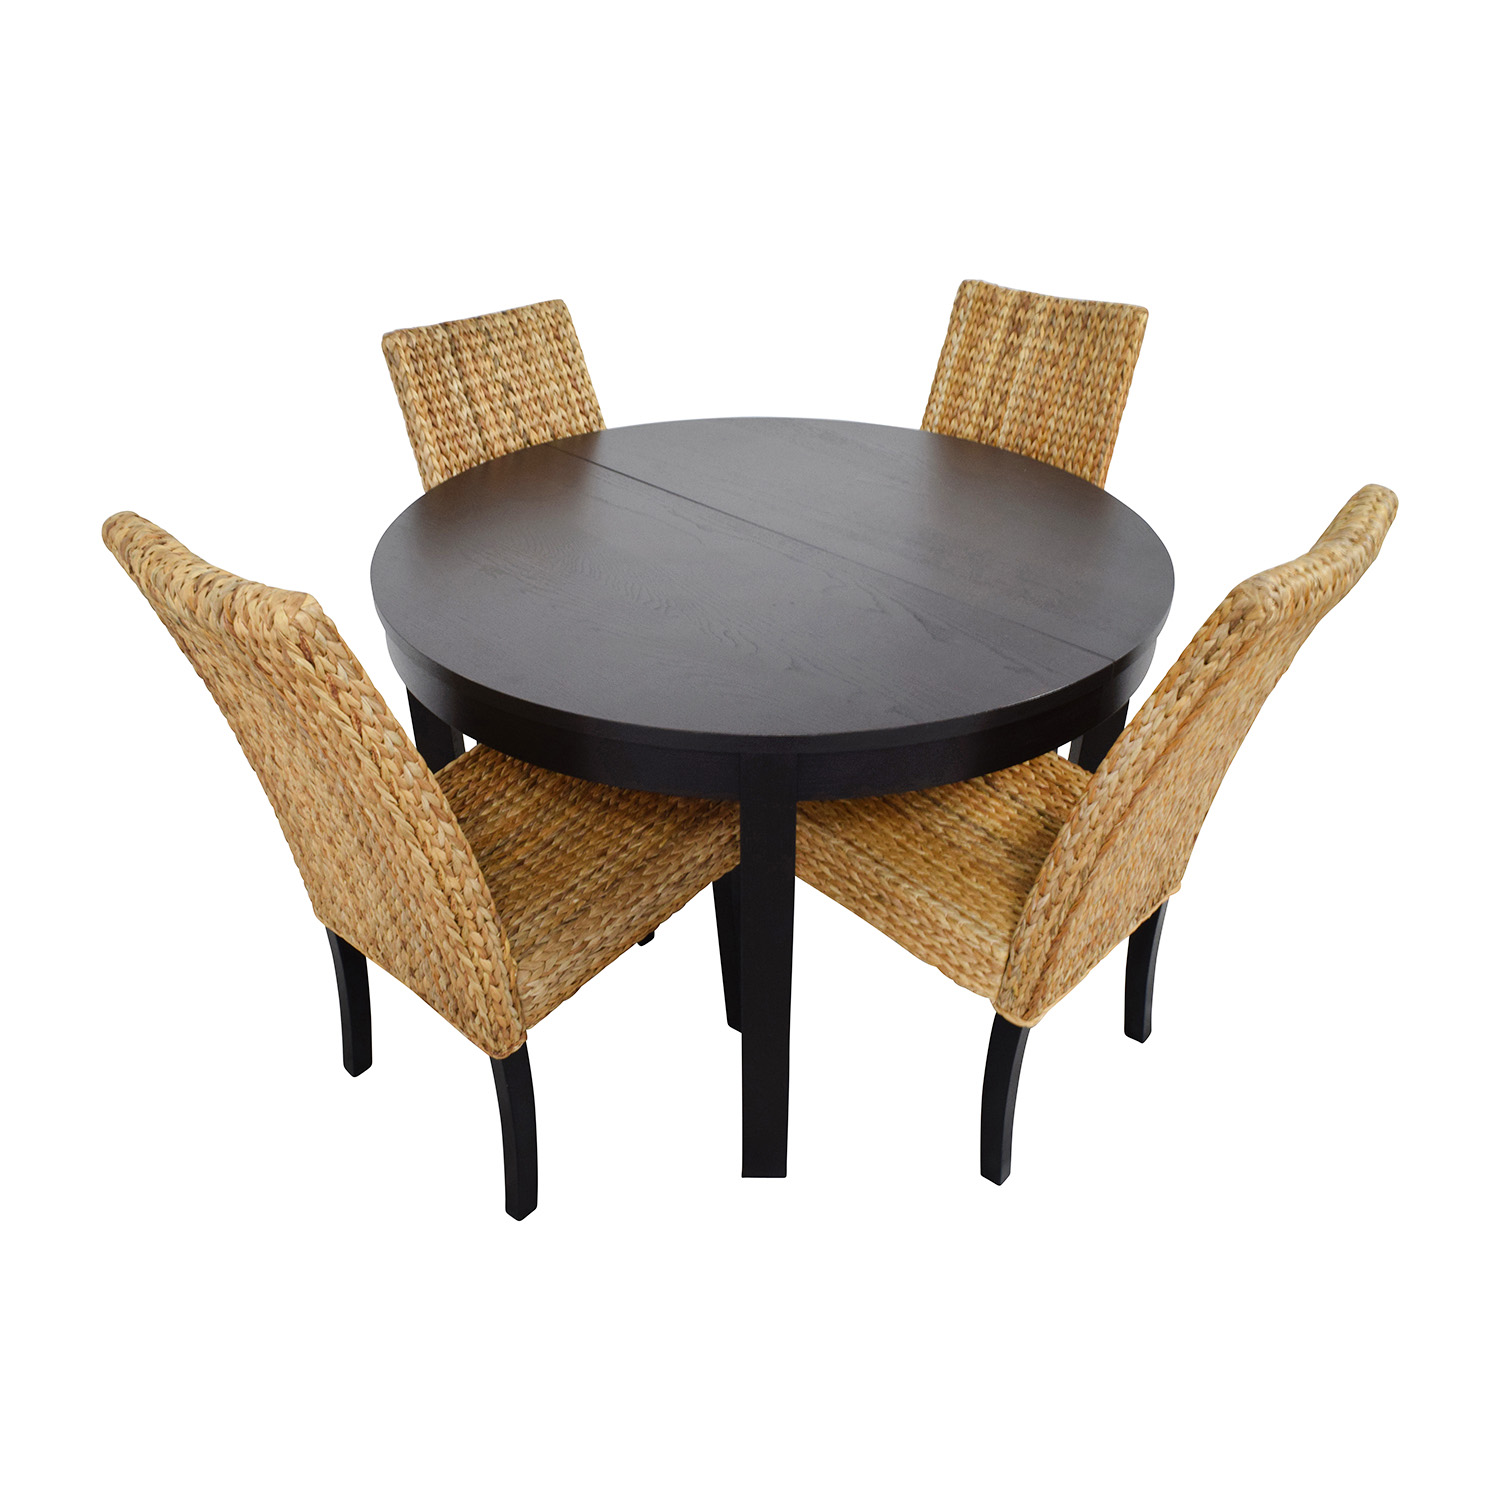 Macys & IKEA Round Black Dining Table Set with Four Chairs discount